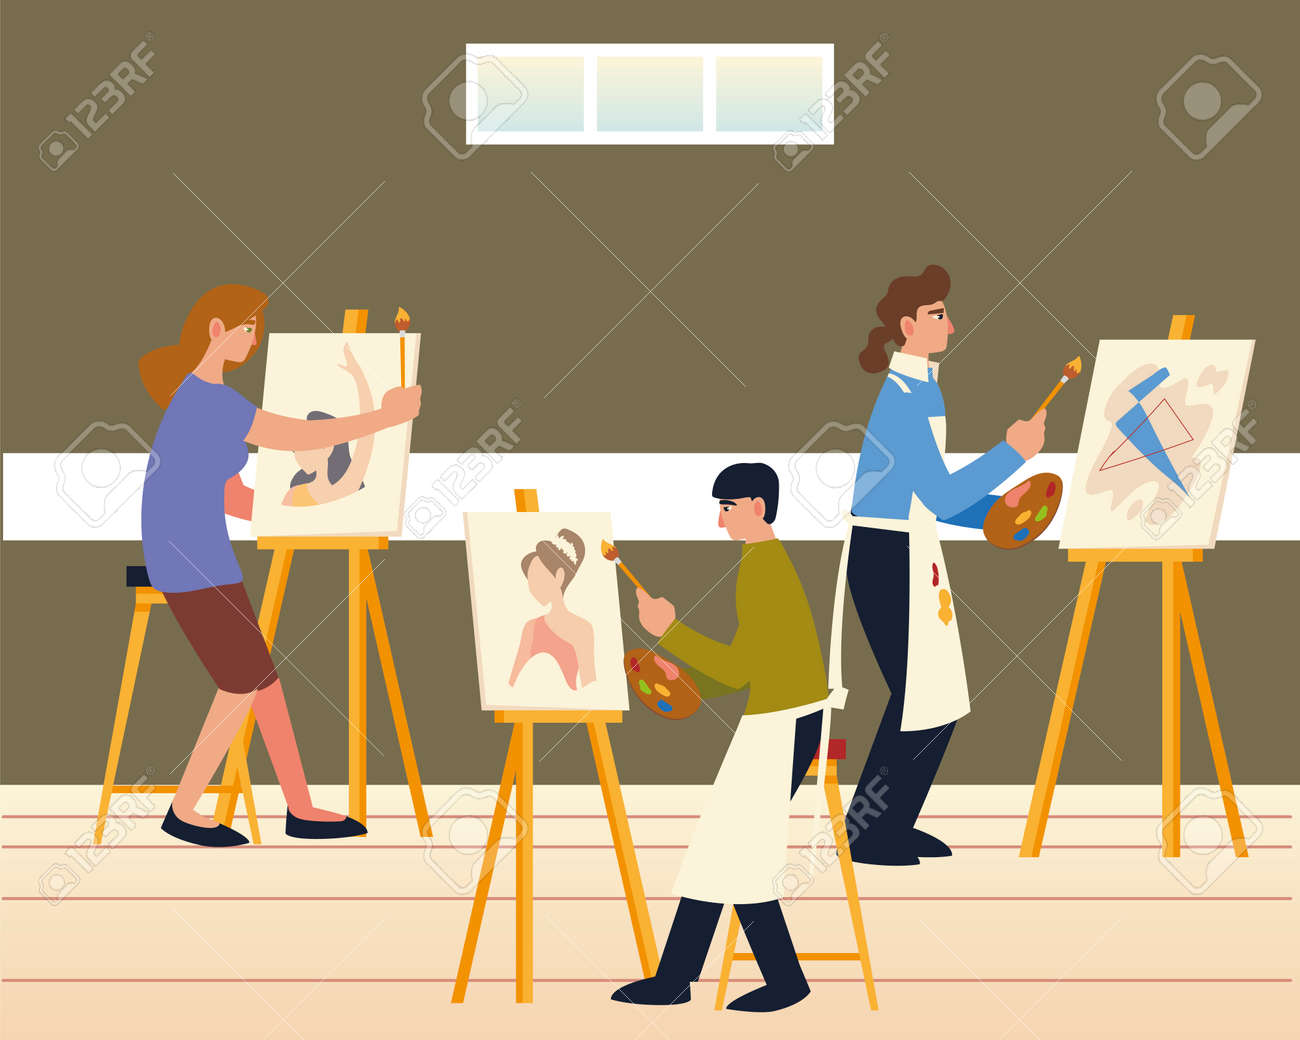 paint class, men and woman painting on canvas at easel - 162618154